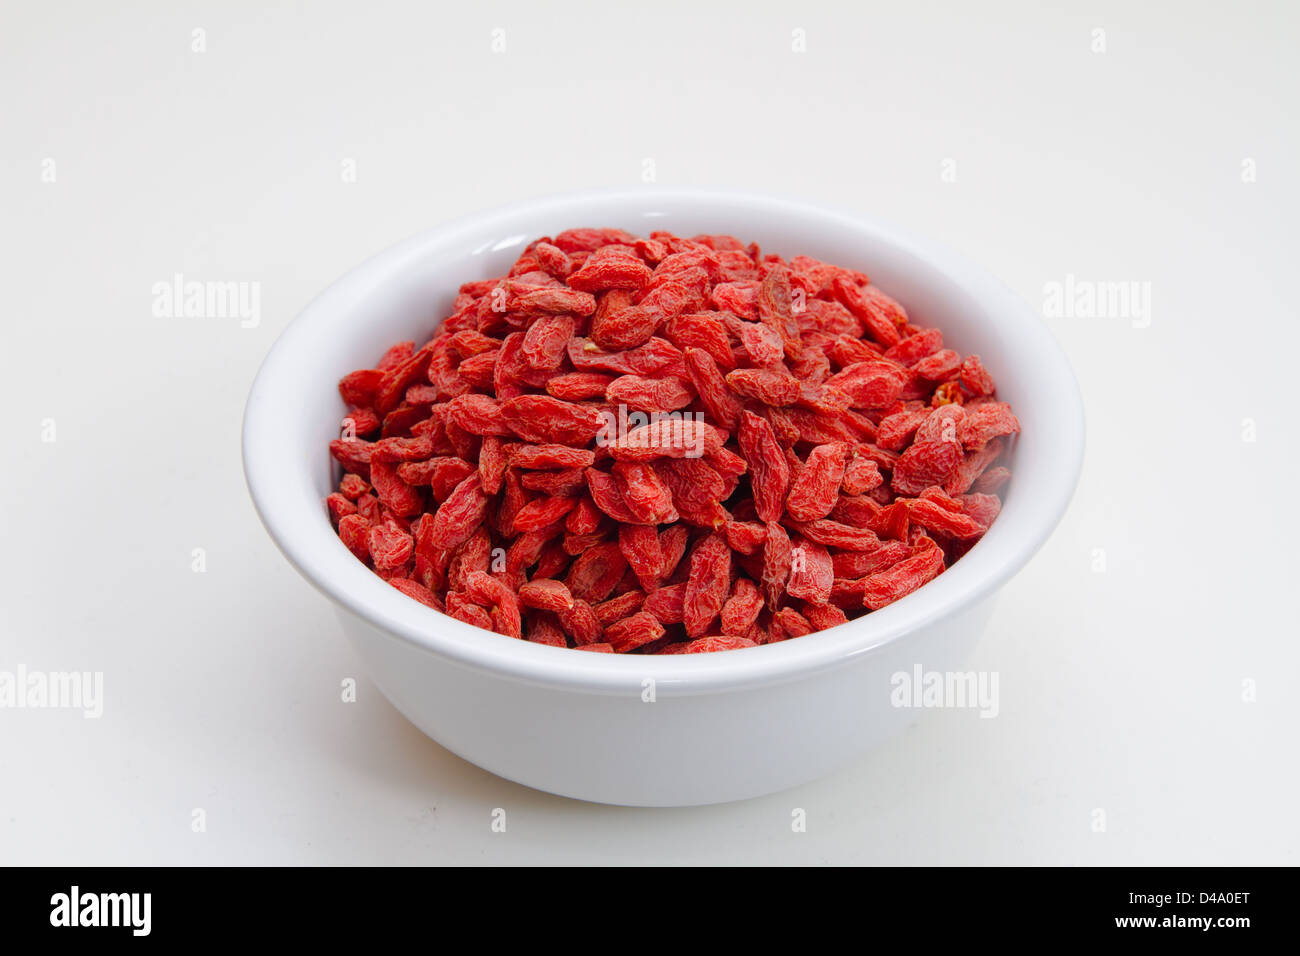 Dried goji berries in a bowl - Stock Image